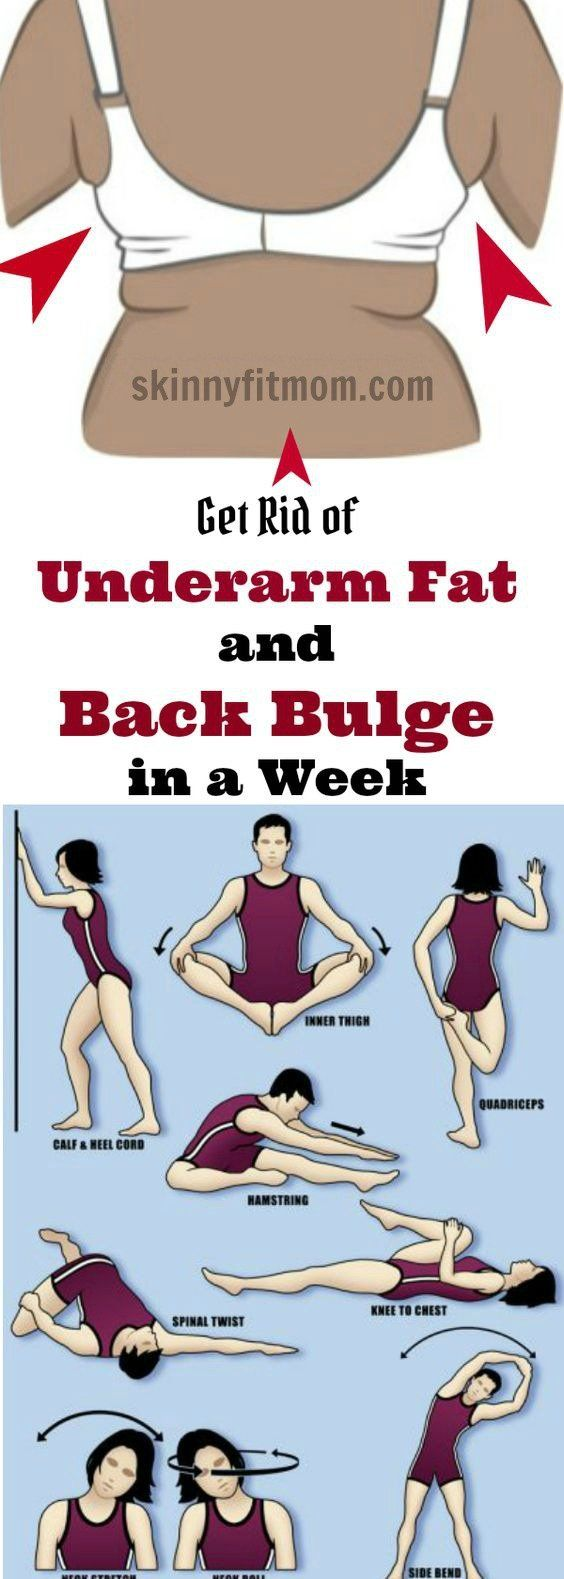 the best simple exercises to lose underarm fat and bra bulge fast in 7 days